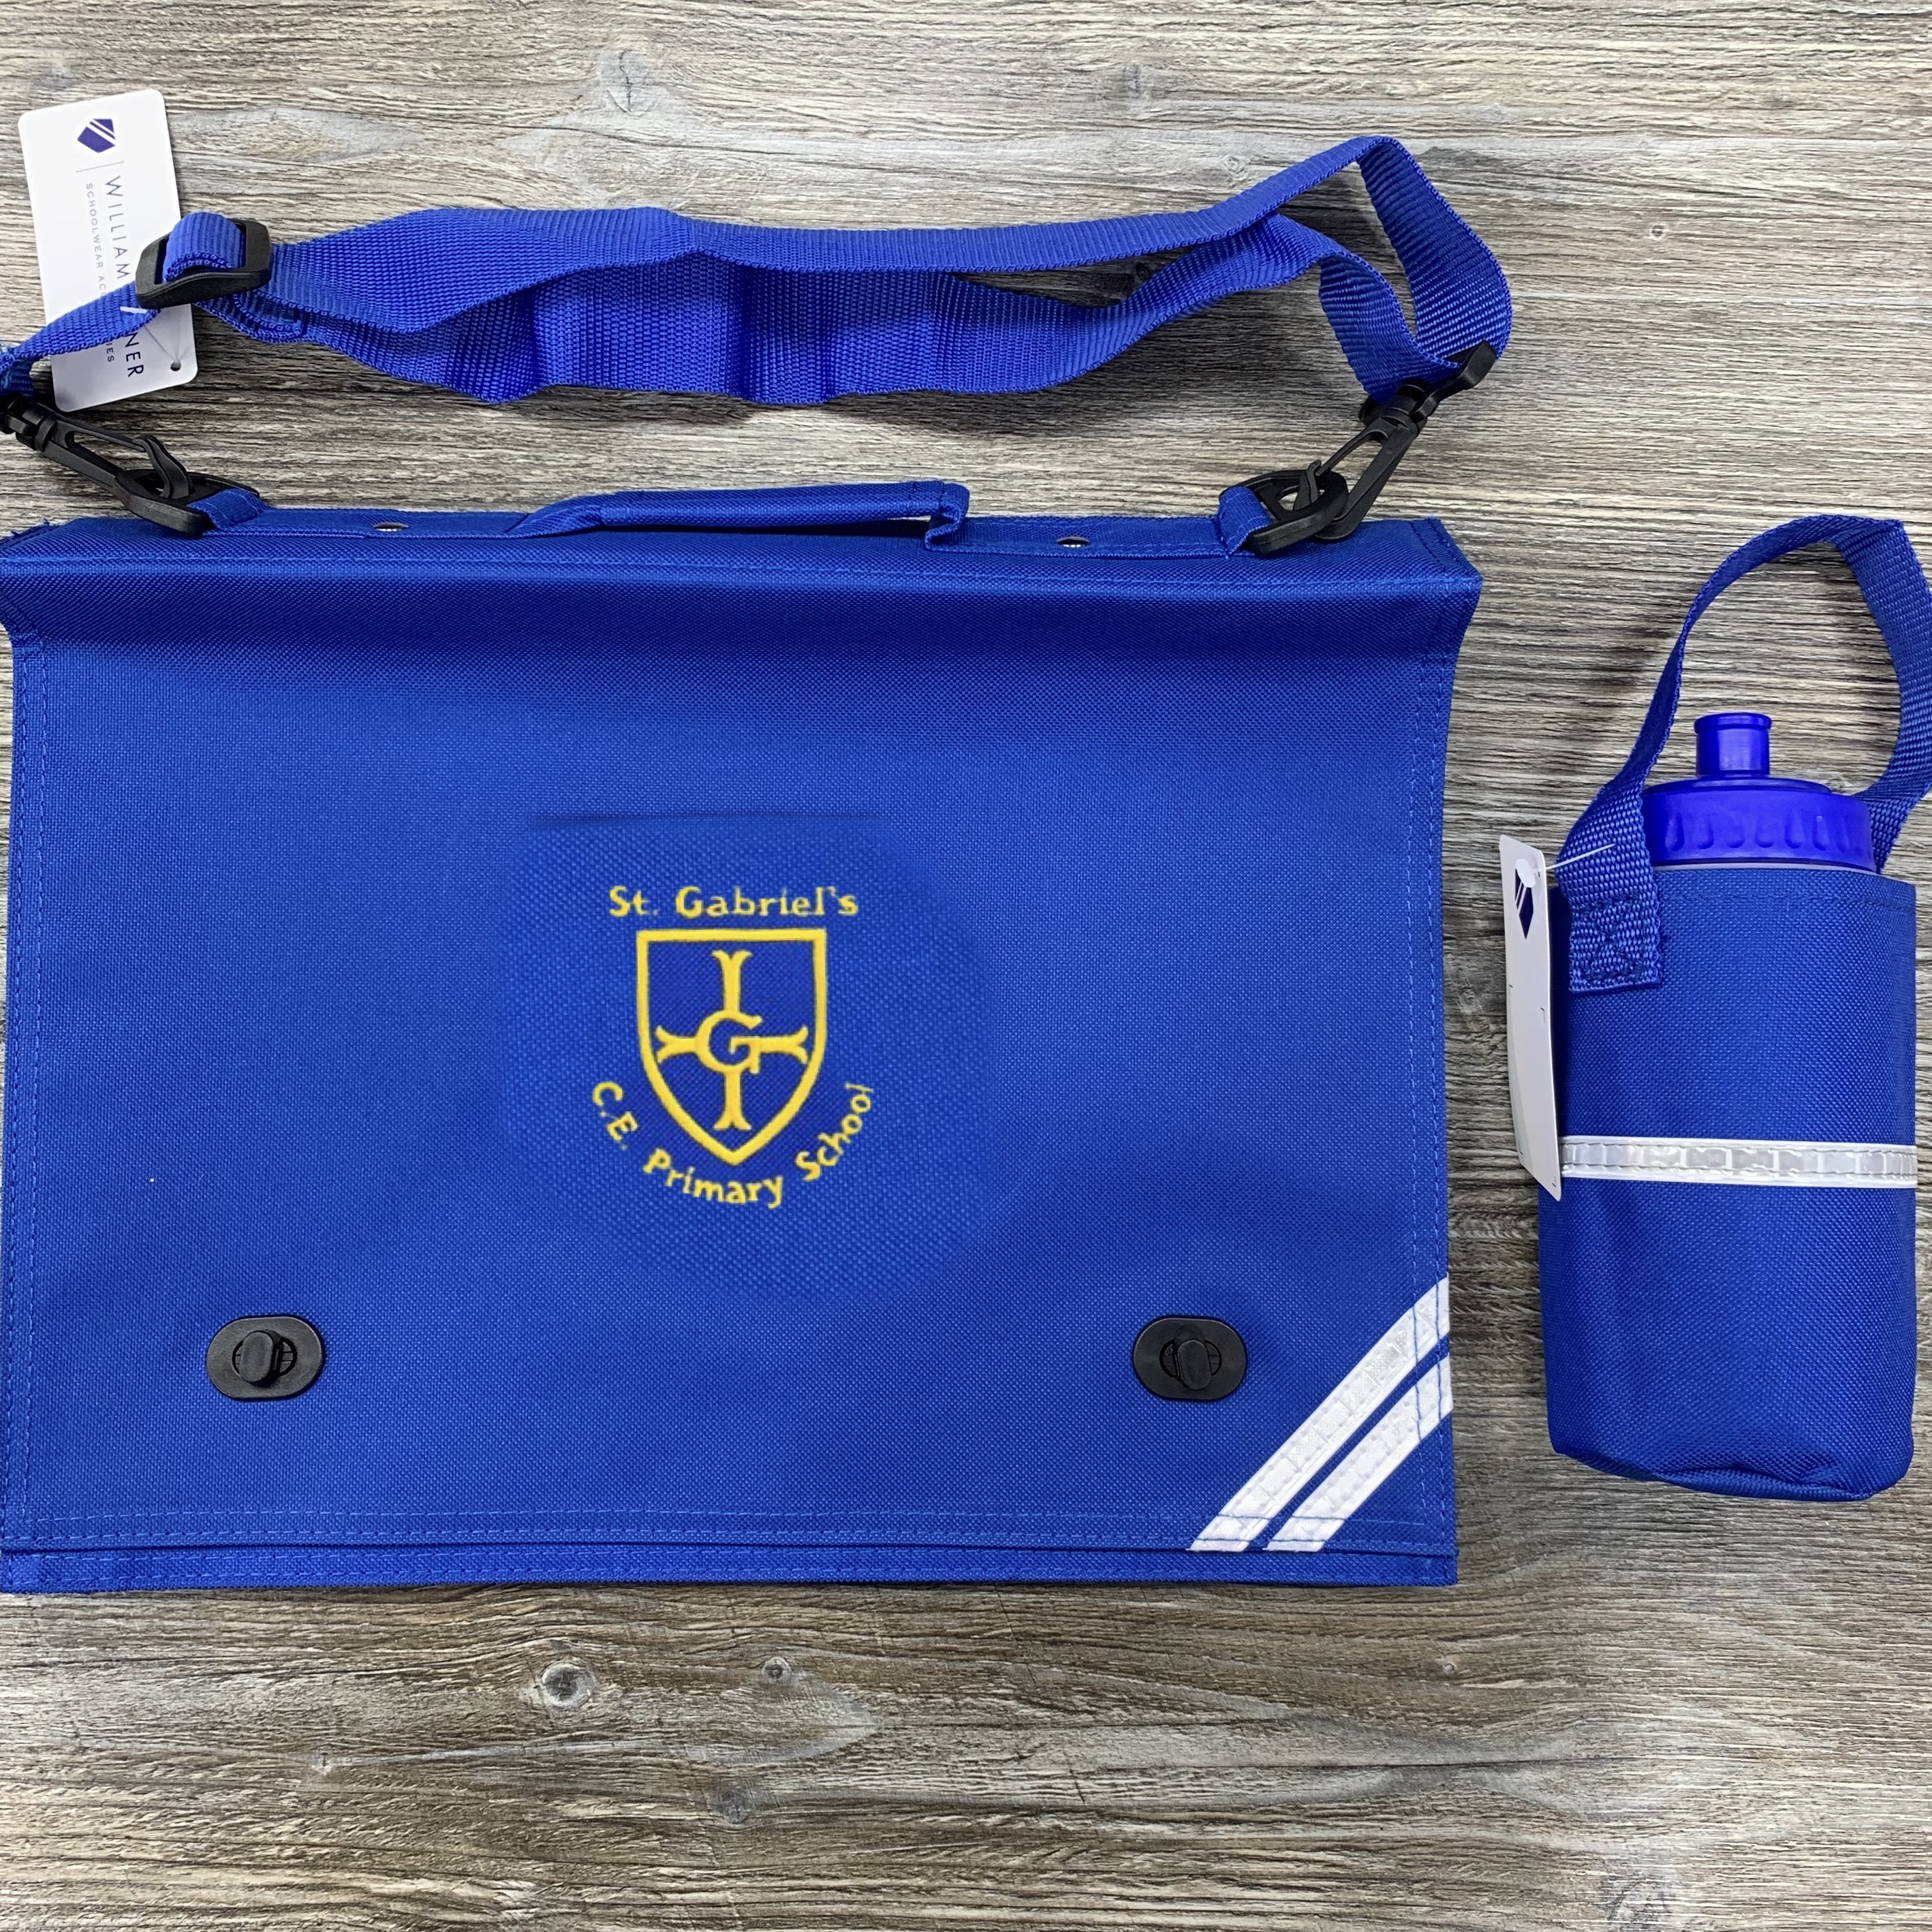 St Gabriels Document Bag & Water Bottle